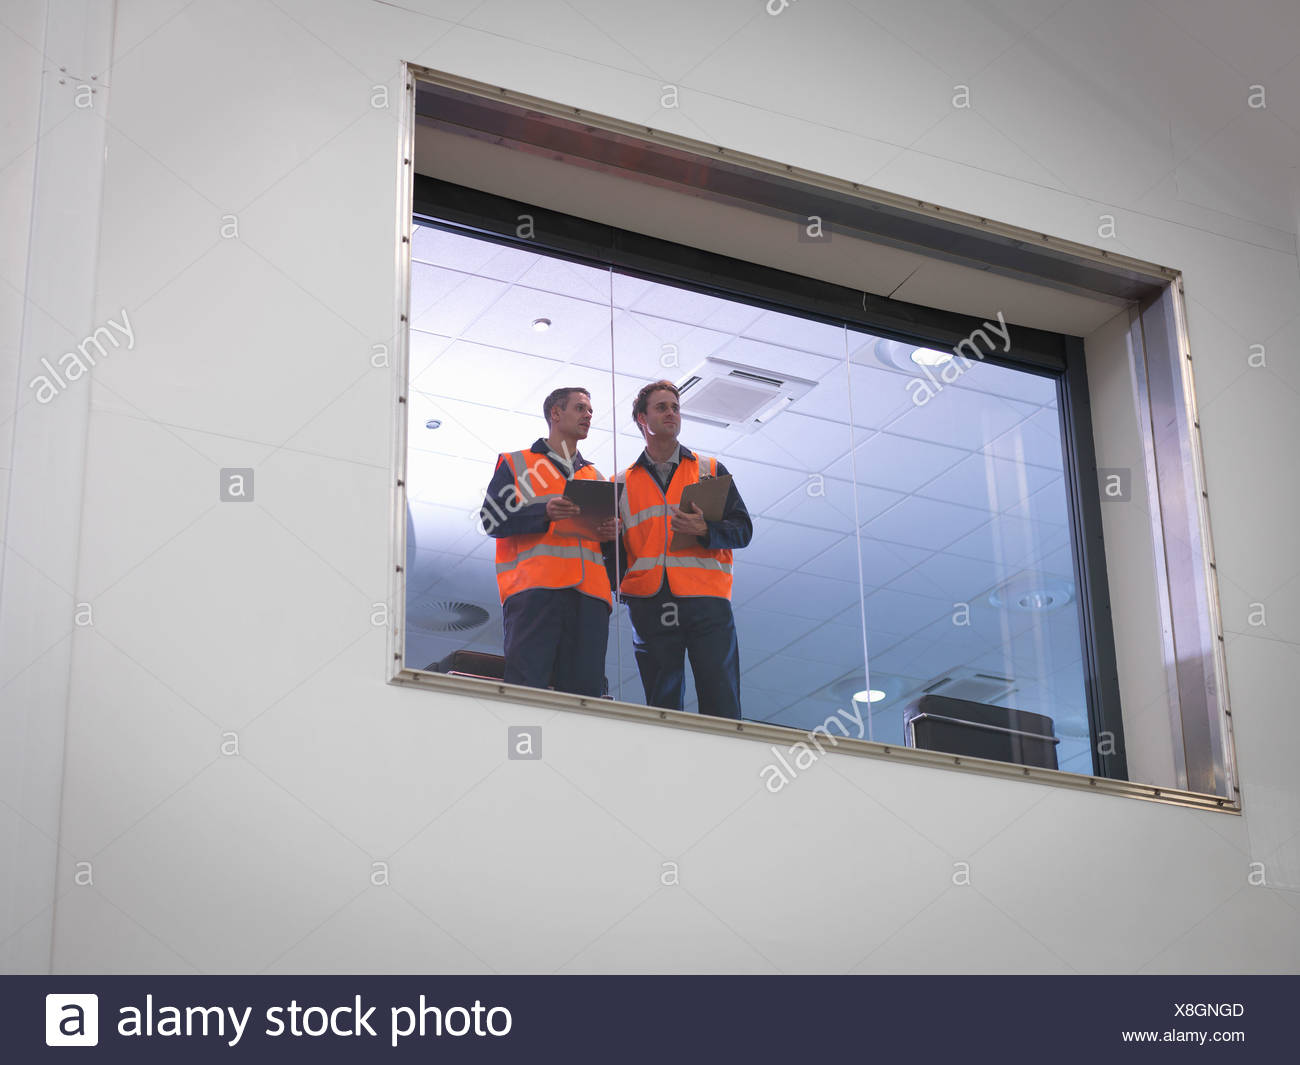 Engineers look out of window into hangar - Stock Image